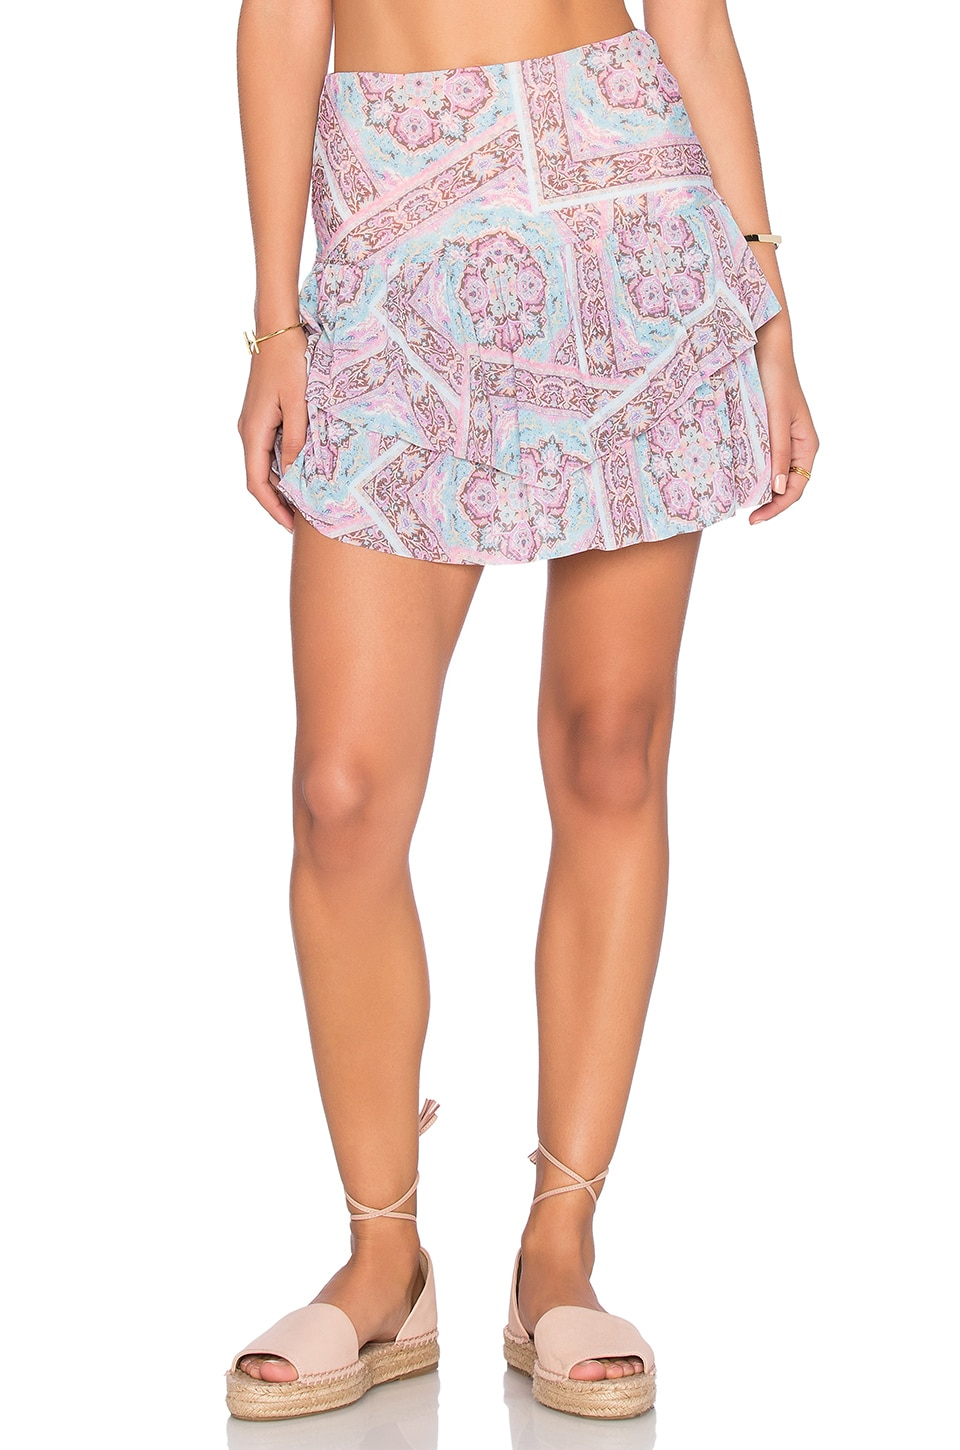 Prairie High Waist Mini Skirt by ale by alessandra